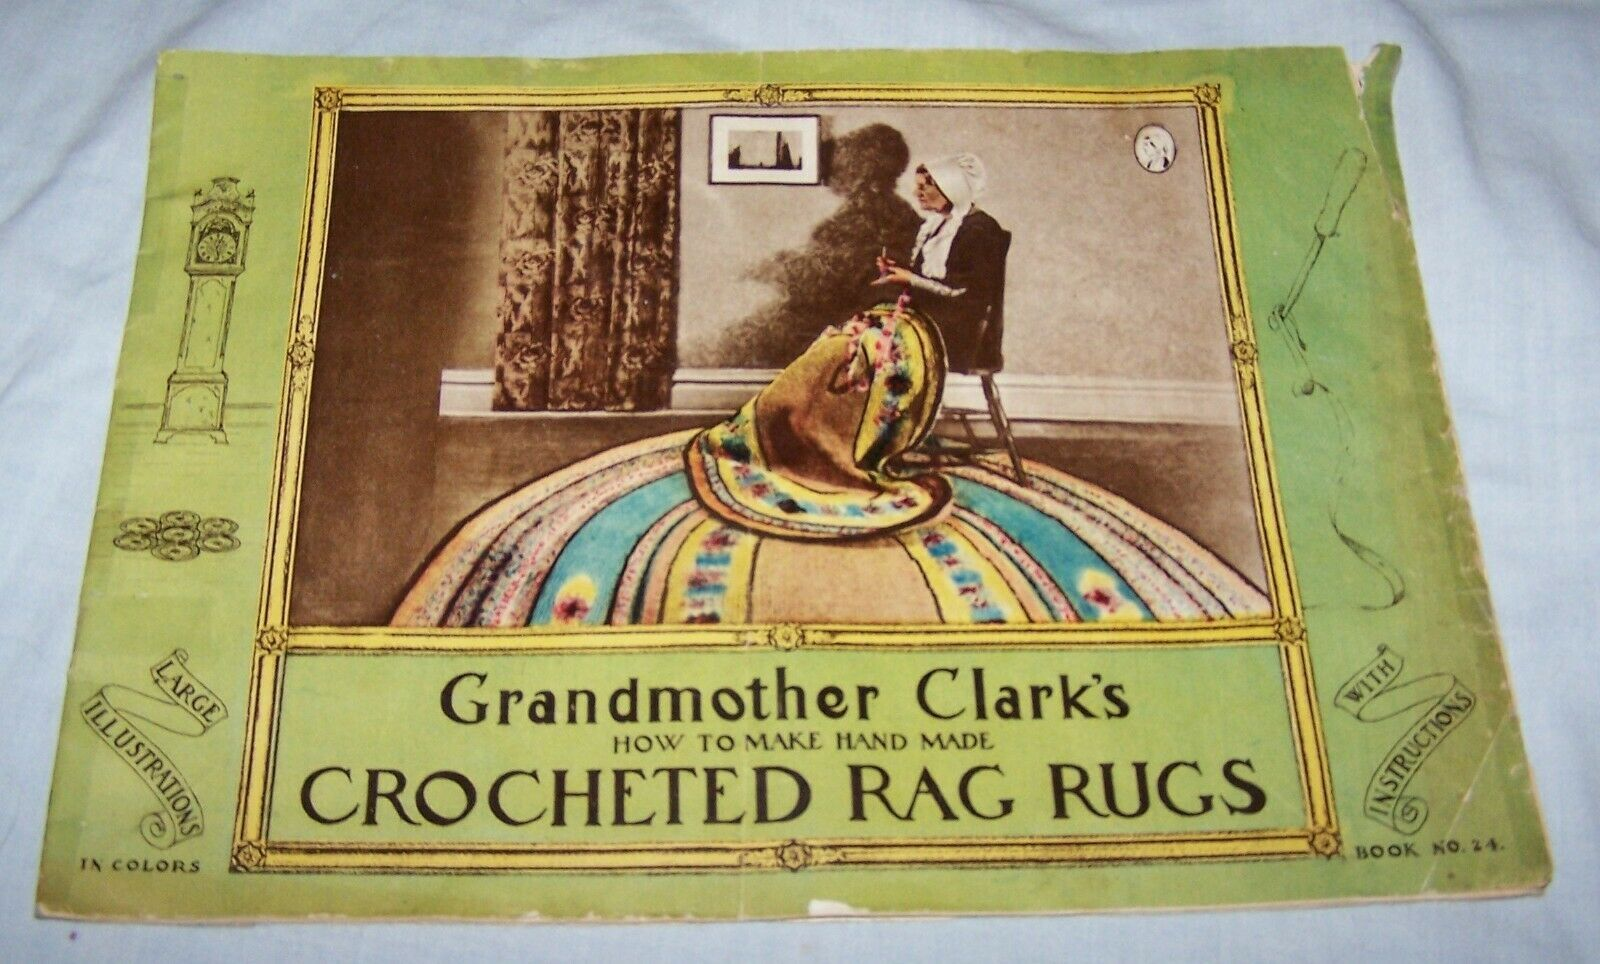 Grandmother Clark's Handmade Crocheted Rag Rugs booklet-1933-Estate Sale Find - $7.70